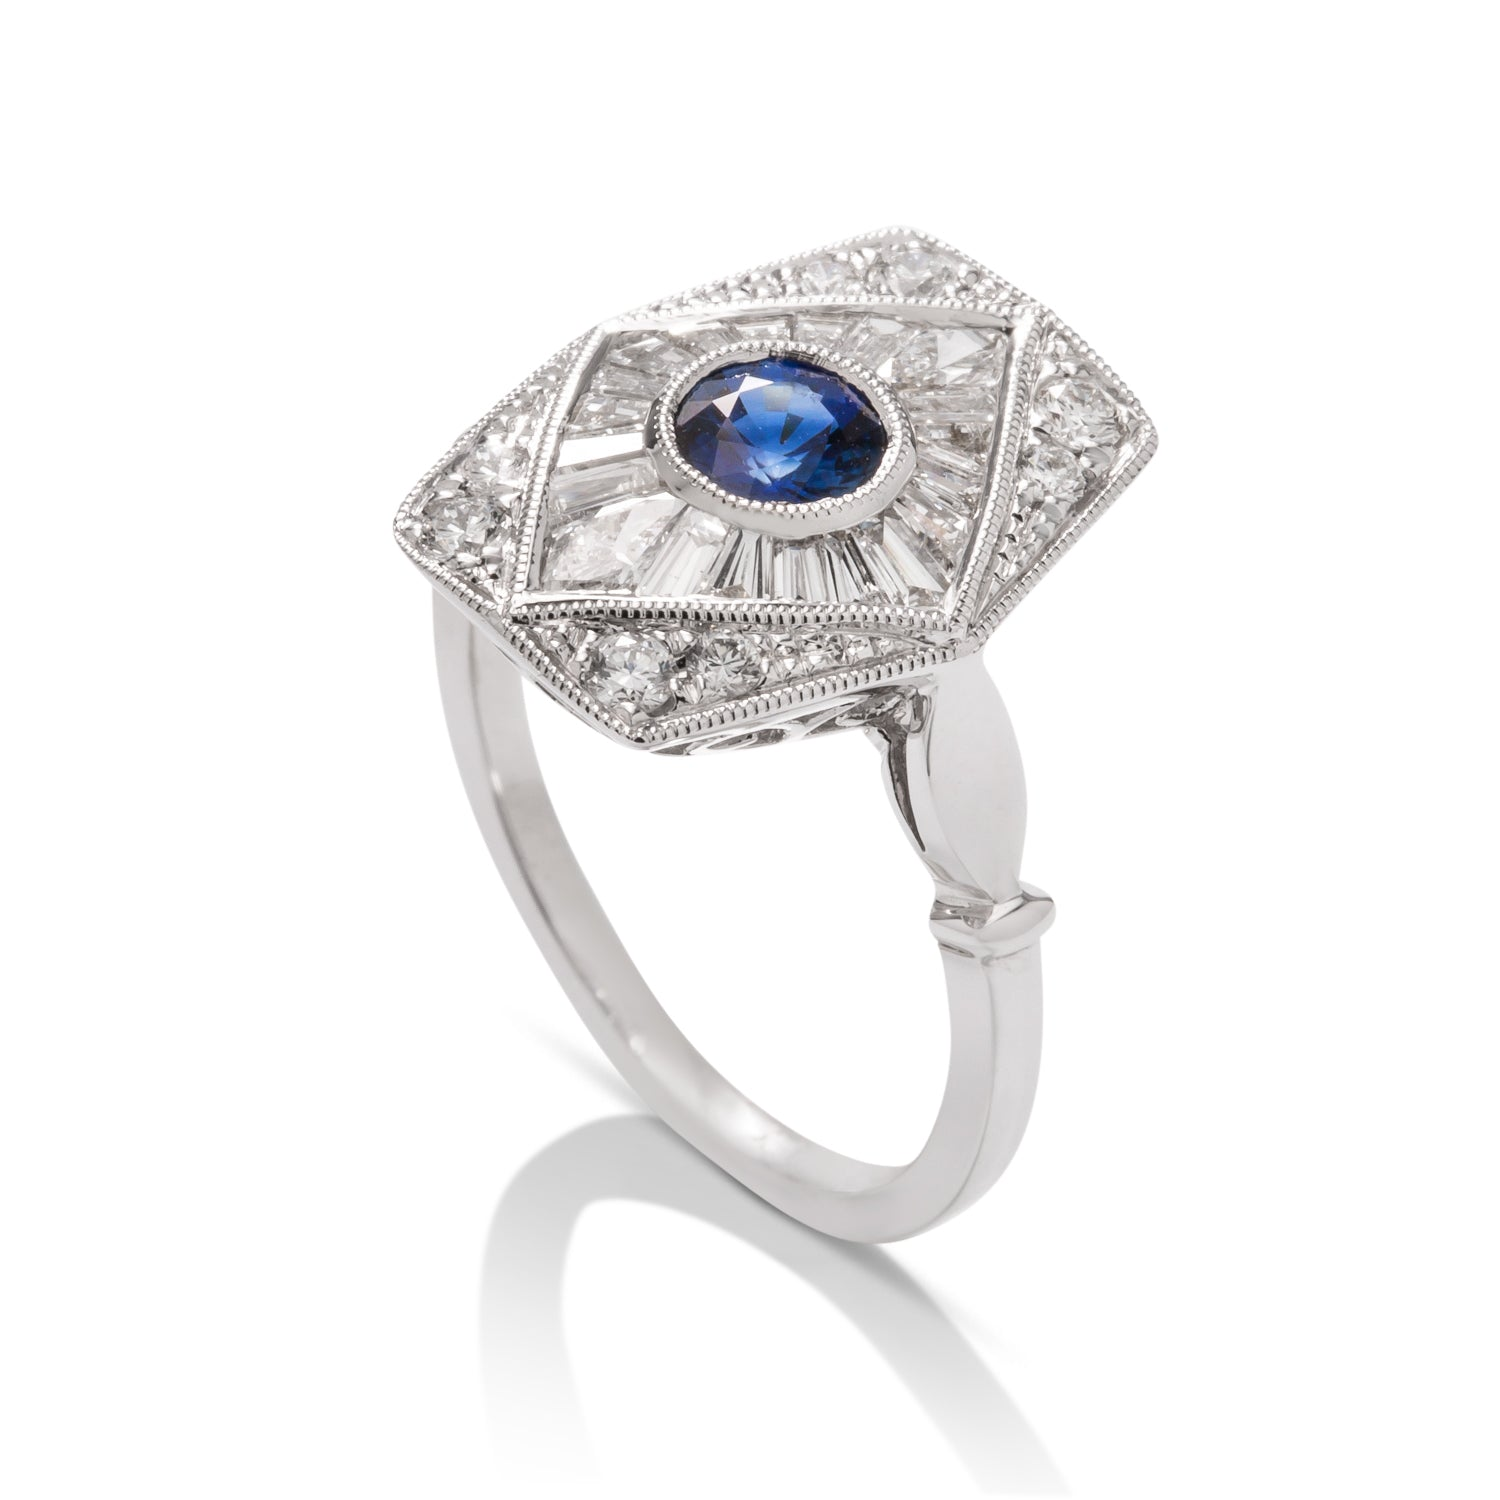 Antique Style Sapphire and Diamond Ring - Charles Koll Jewellers